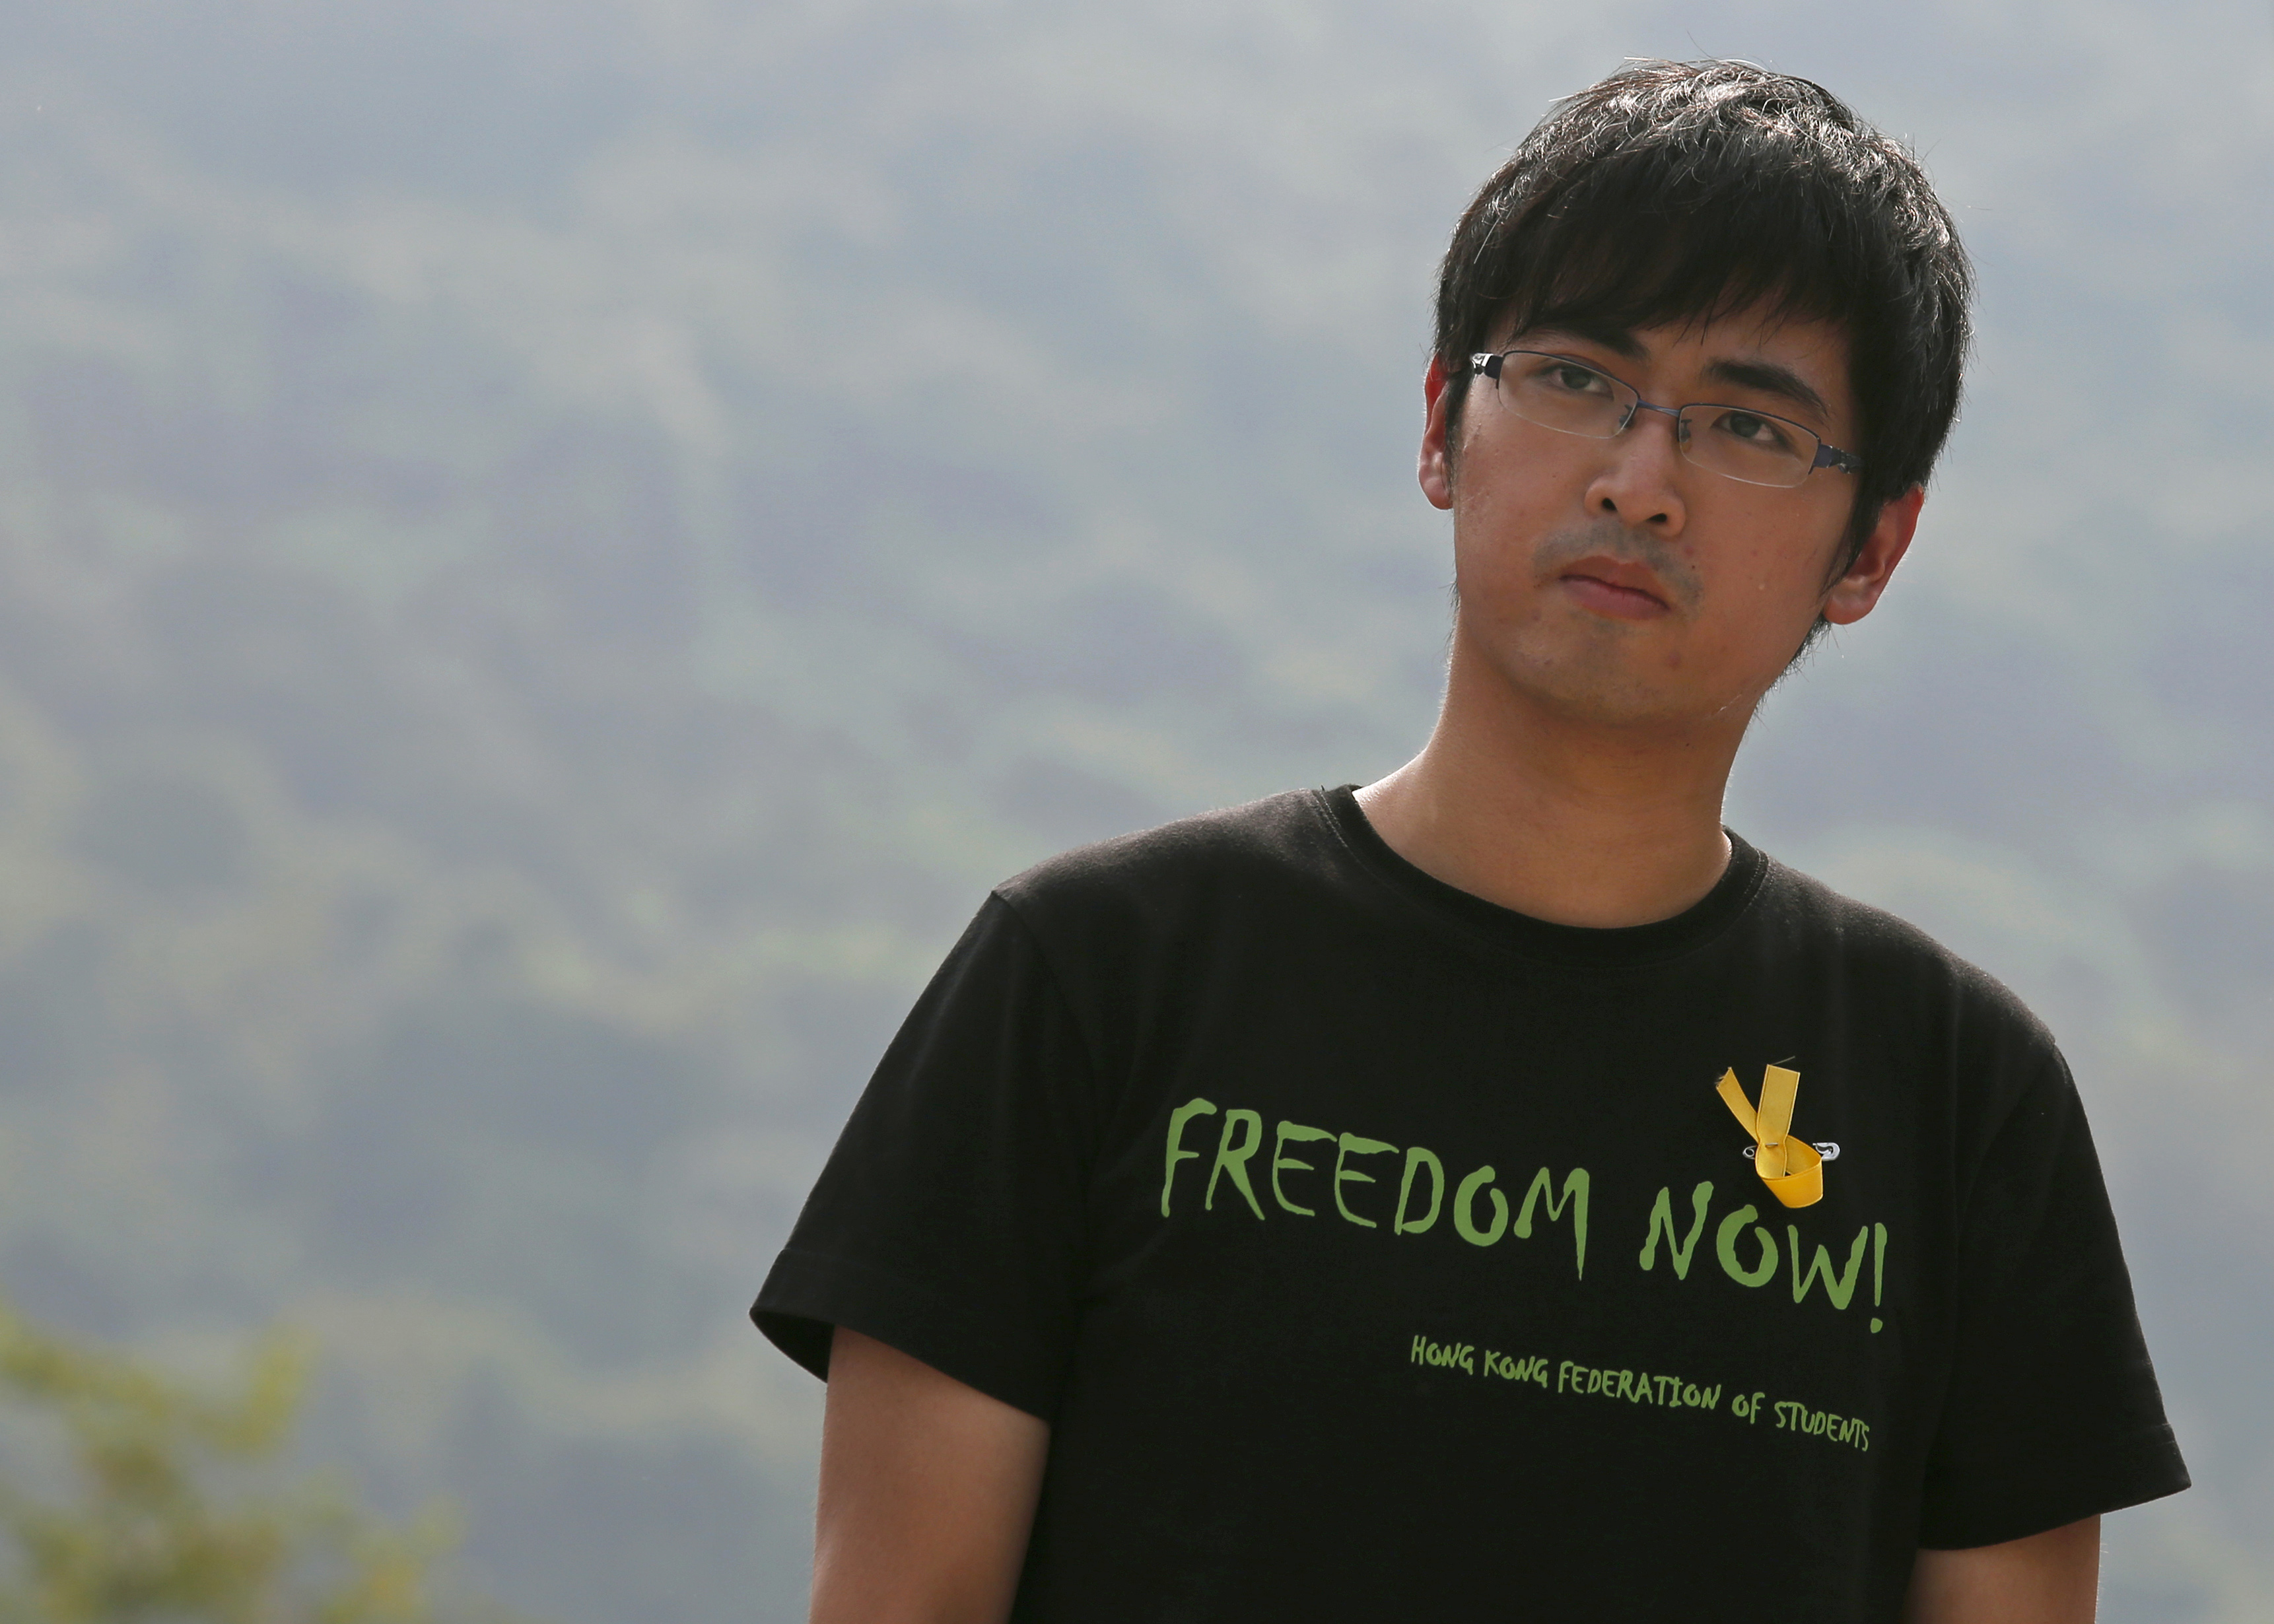 Alex Chow, secretary-general of the Hong Kong Federation of Students, attends a rally at the Chinese University in Hong Kong on Sept. 22, 2014